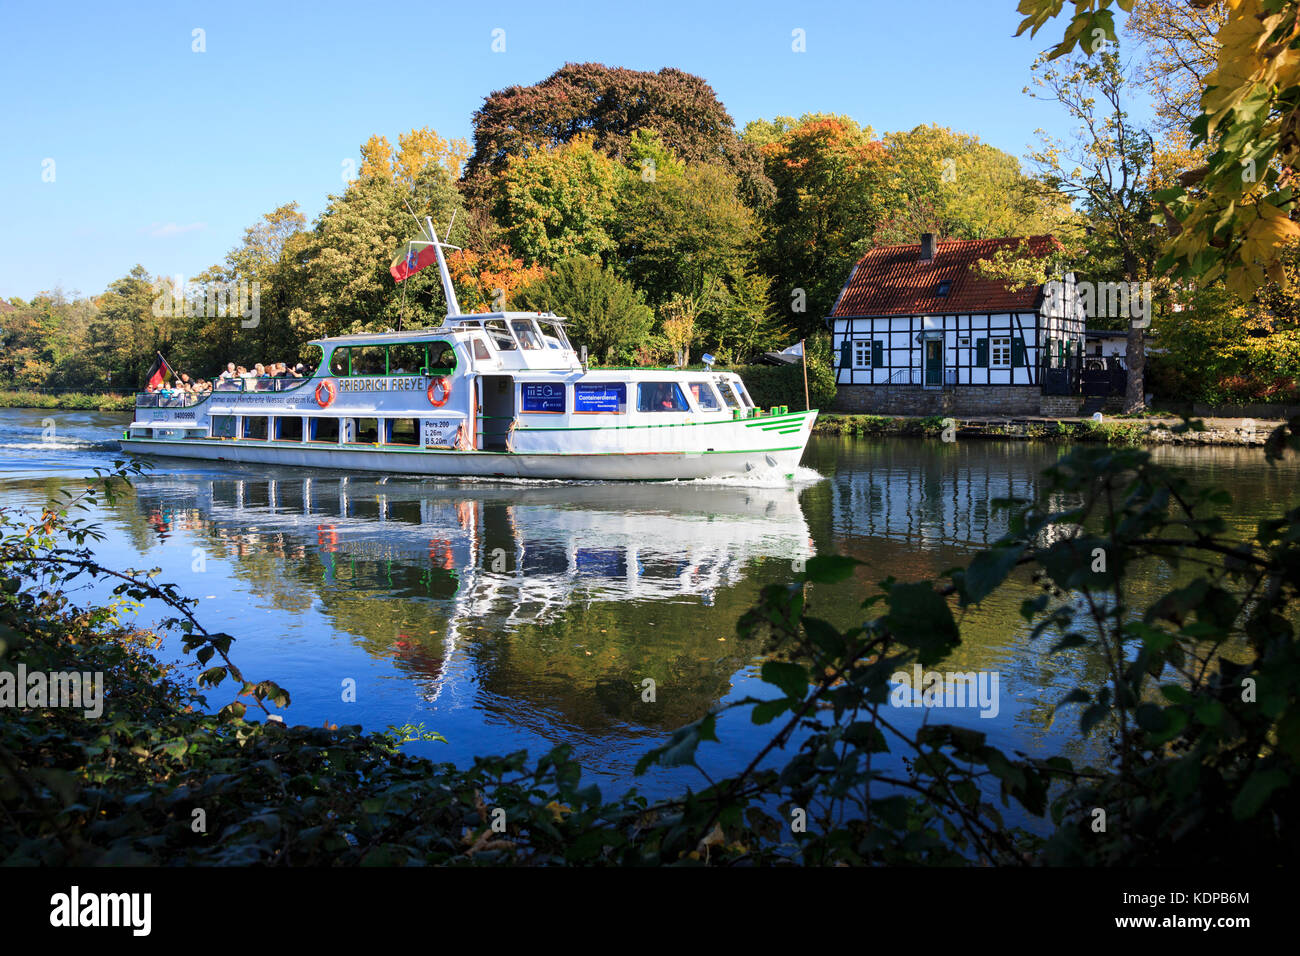 excursion-boat-of-weisse-flotte-on-the-r